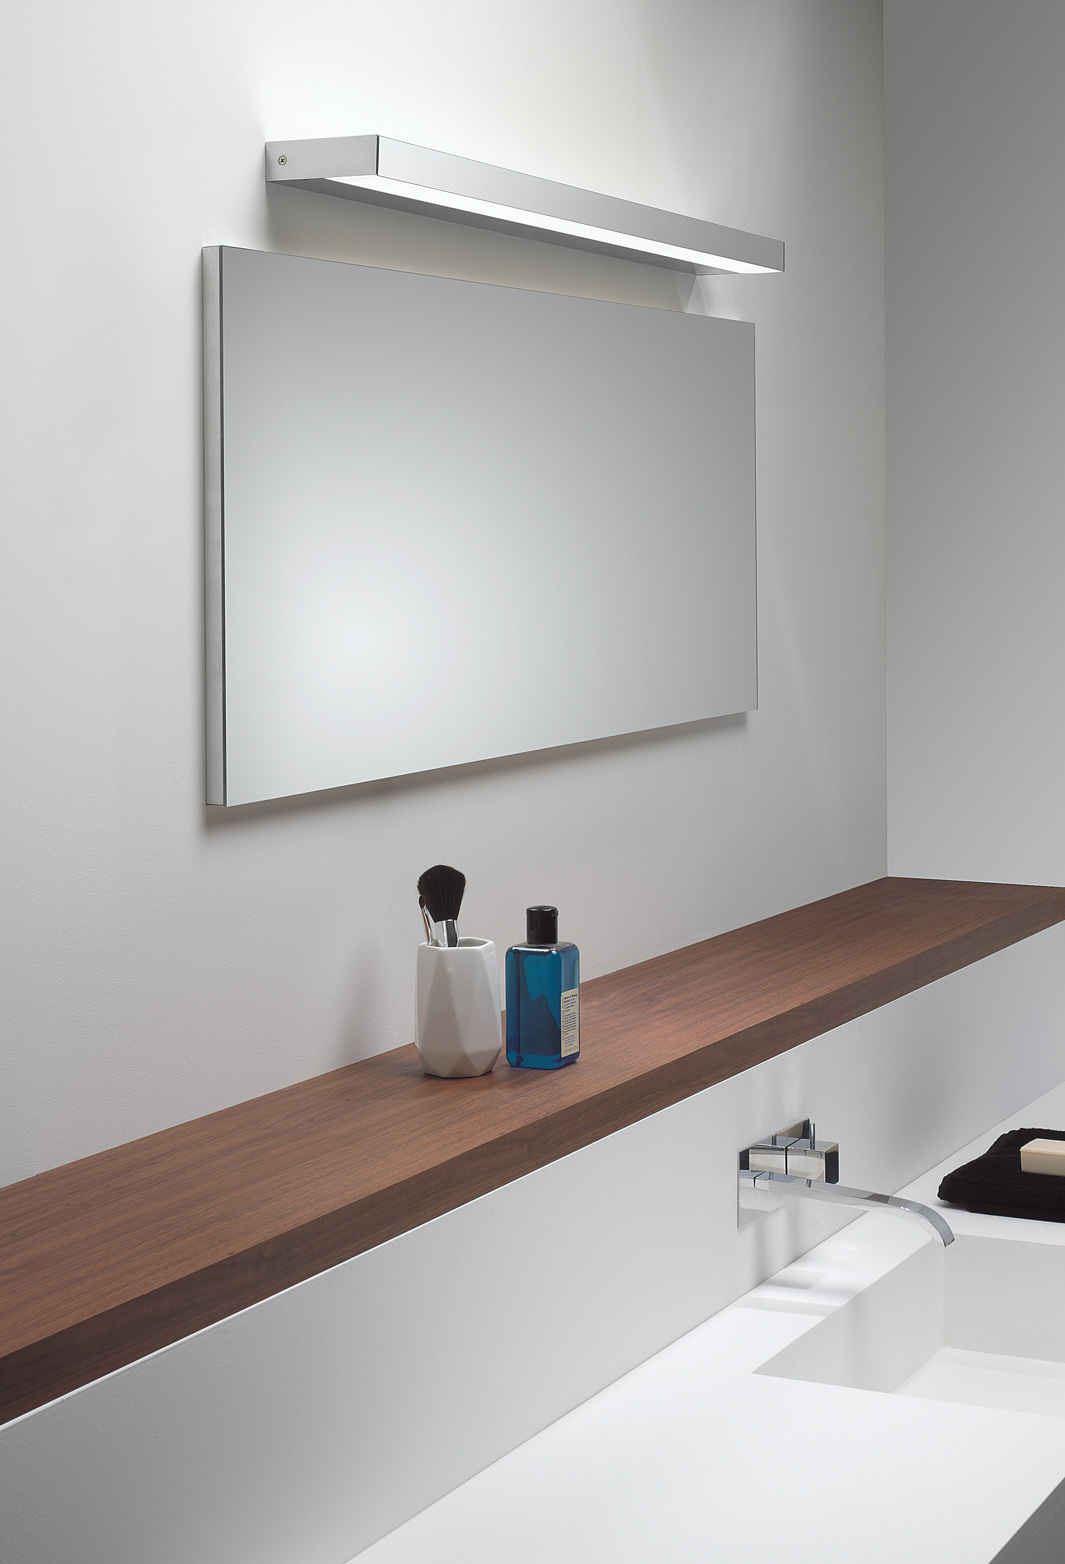 Astro Axios Led Ip44 Bathroom Wall Light Mirror Light Up Down Polished Chrome Ebay